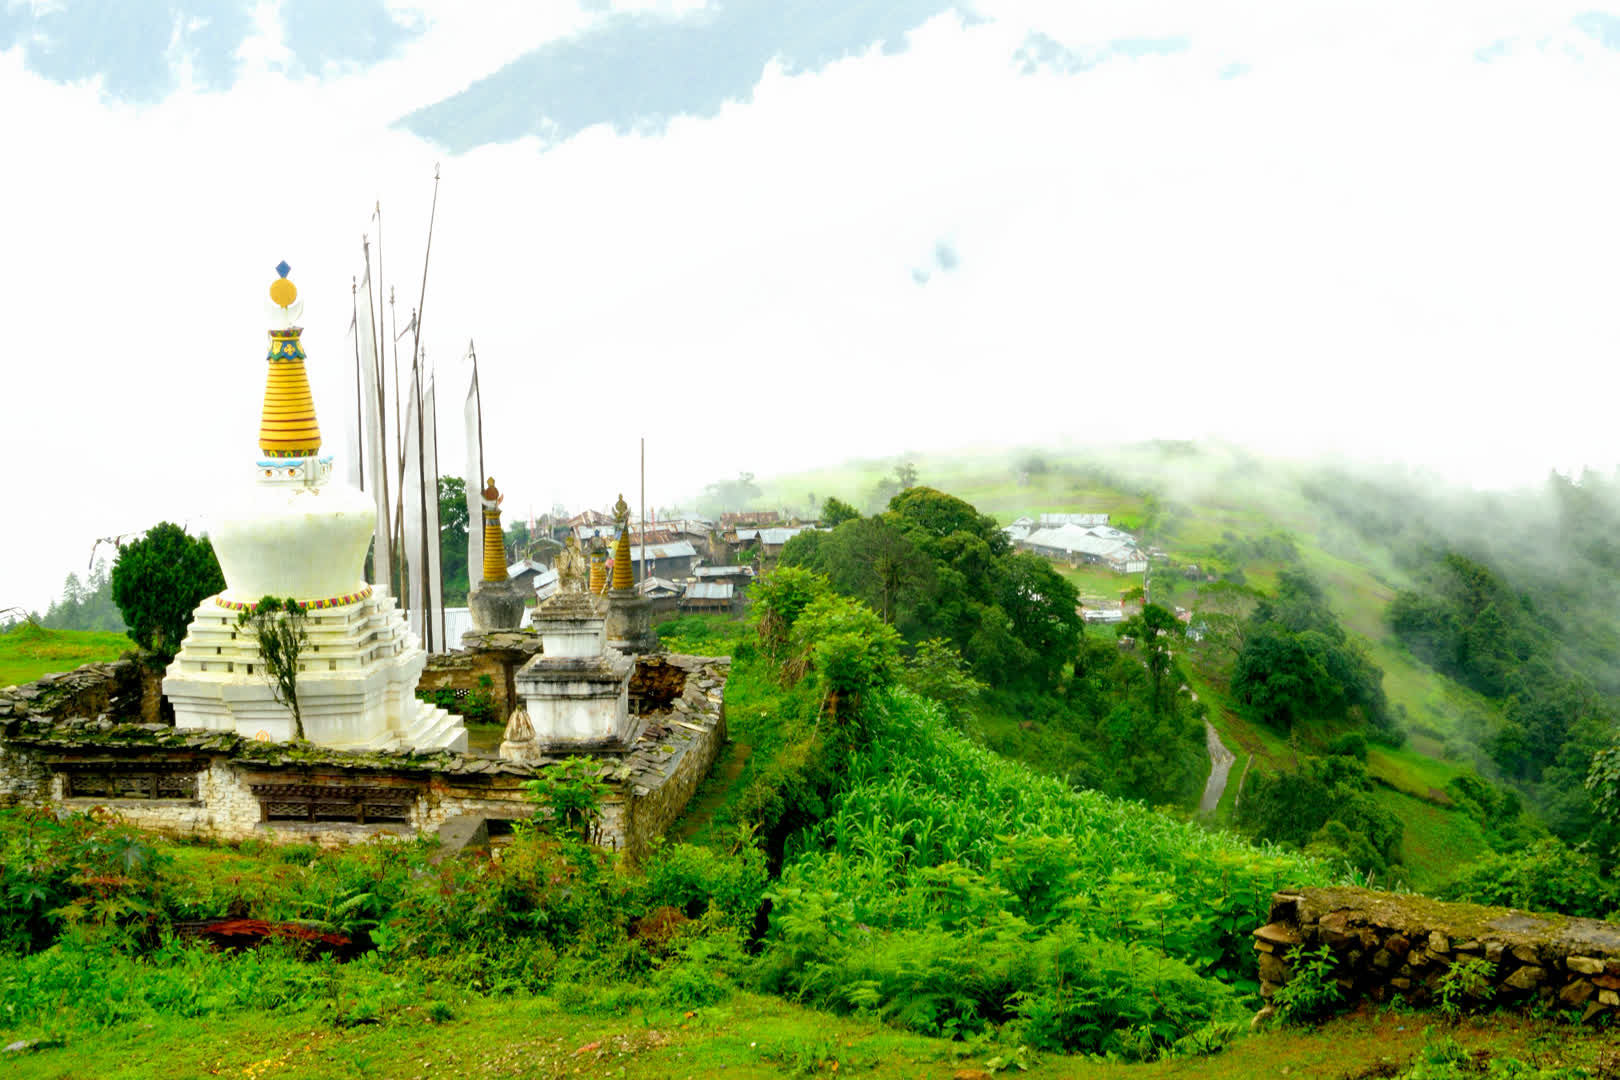 Thembang: A Fortified Village with a Lesson to Share